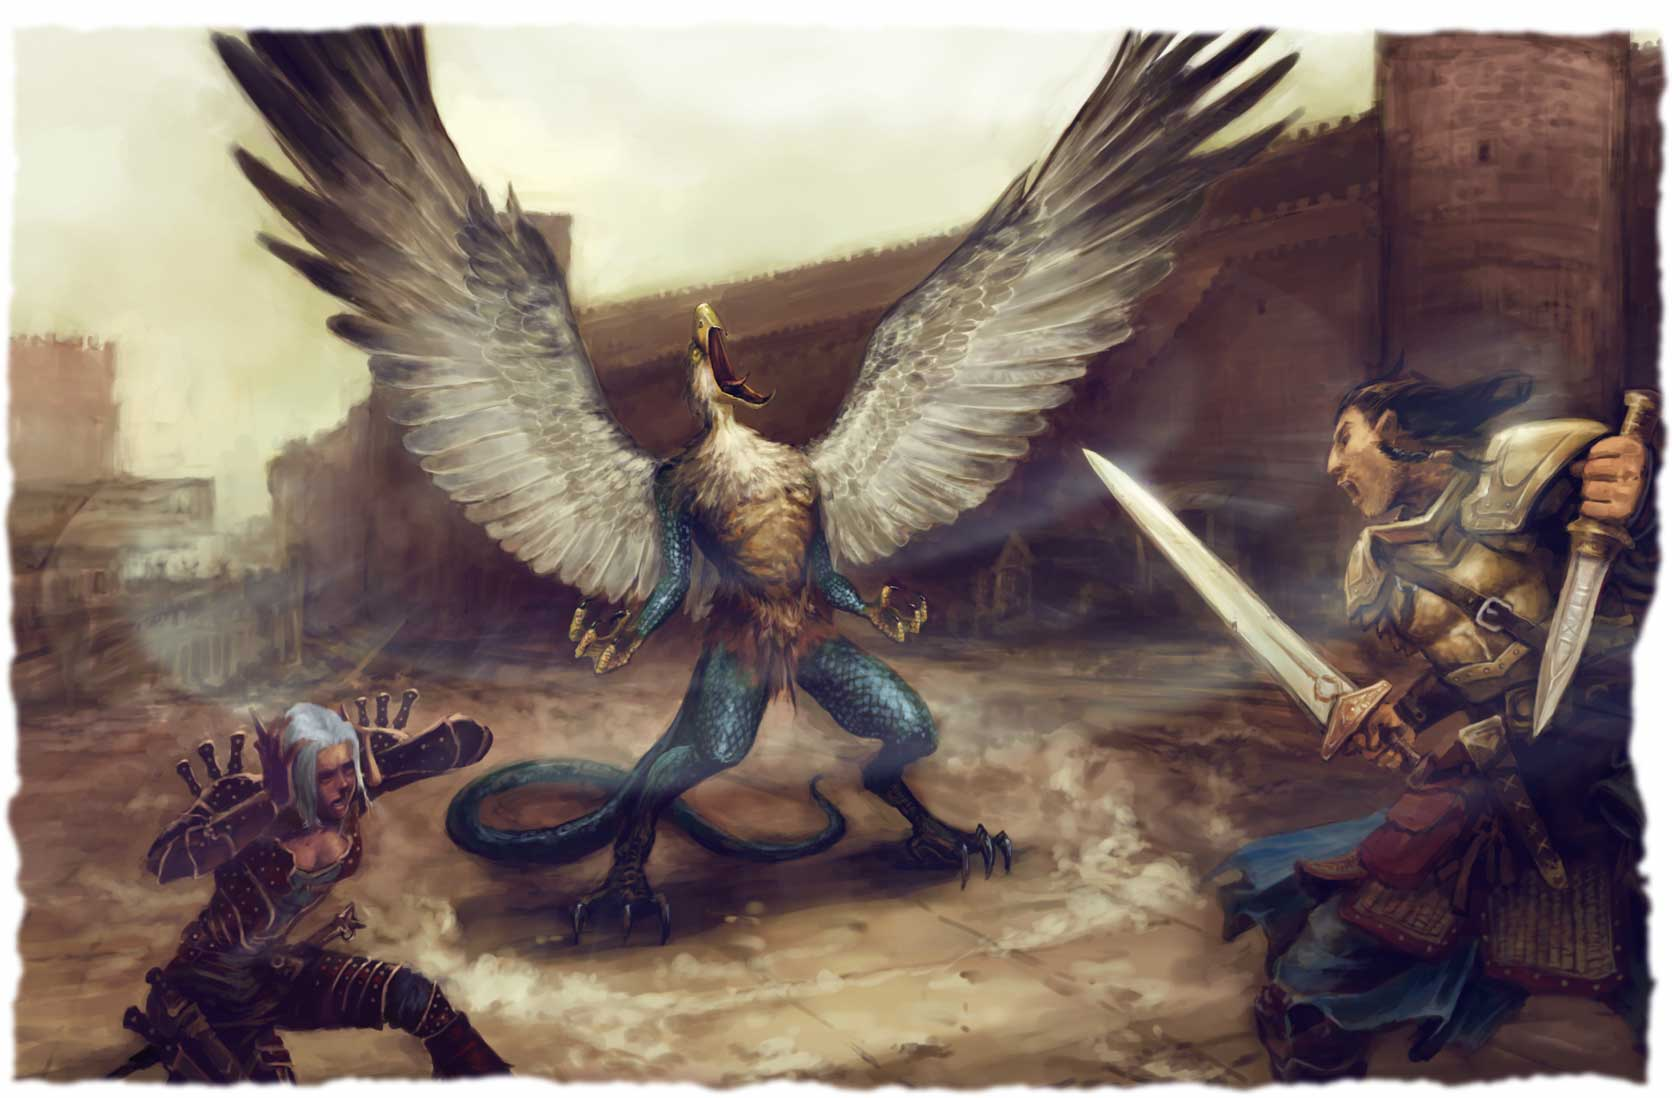 Vrock_Fight_by_James_Zhang-%282008%29_PAIZO_Pathfinder-Game_Mastery_Module_-_The_Demon_Within-PZO9511%20.jpg